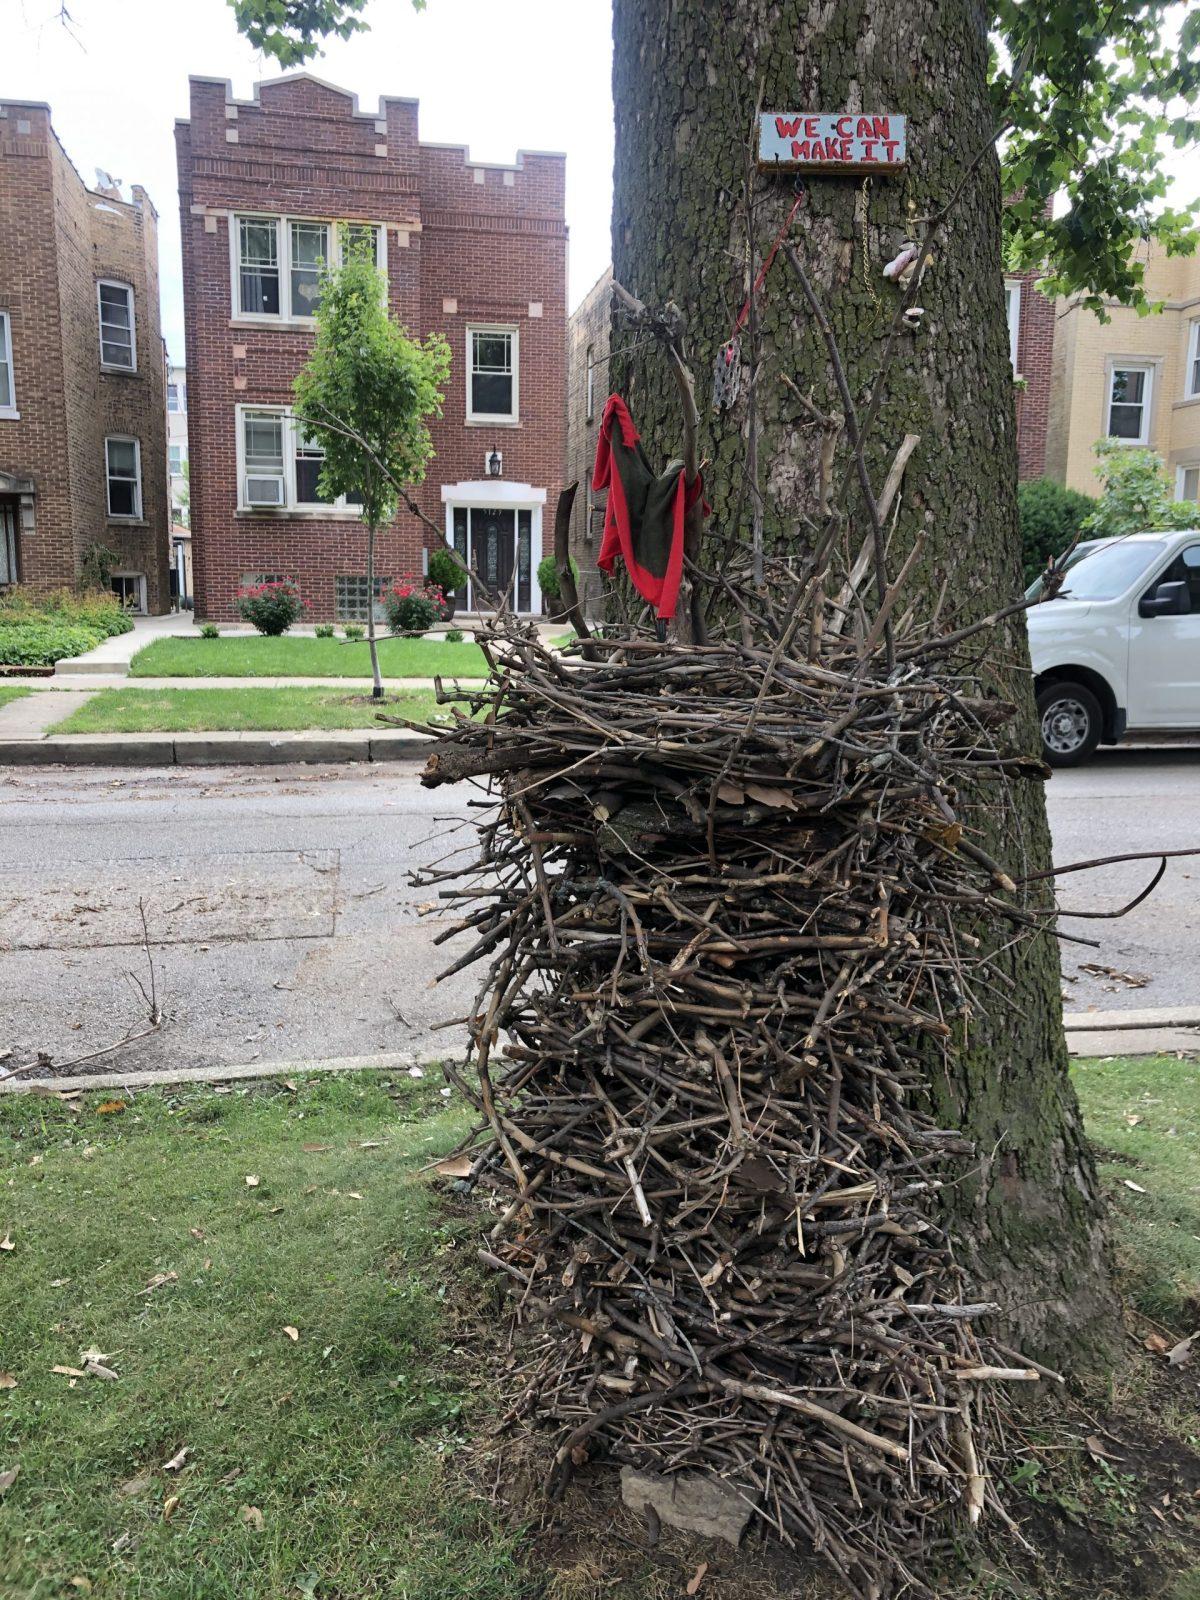 Stick Castle brought neighbors together and offered hope.